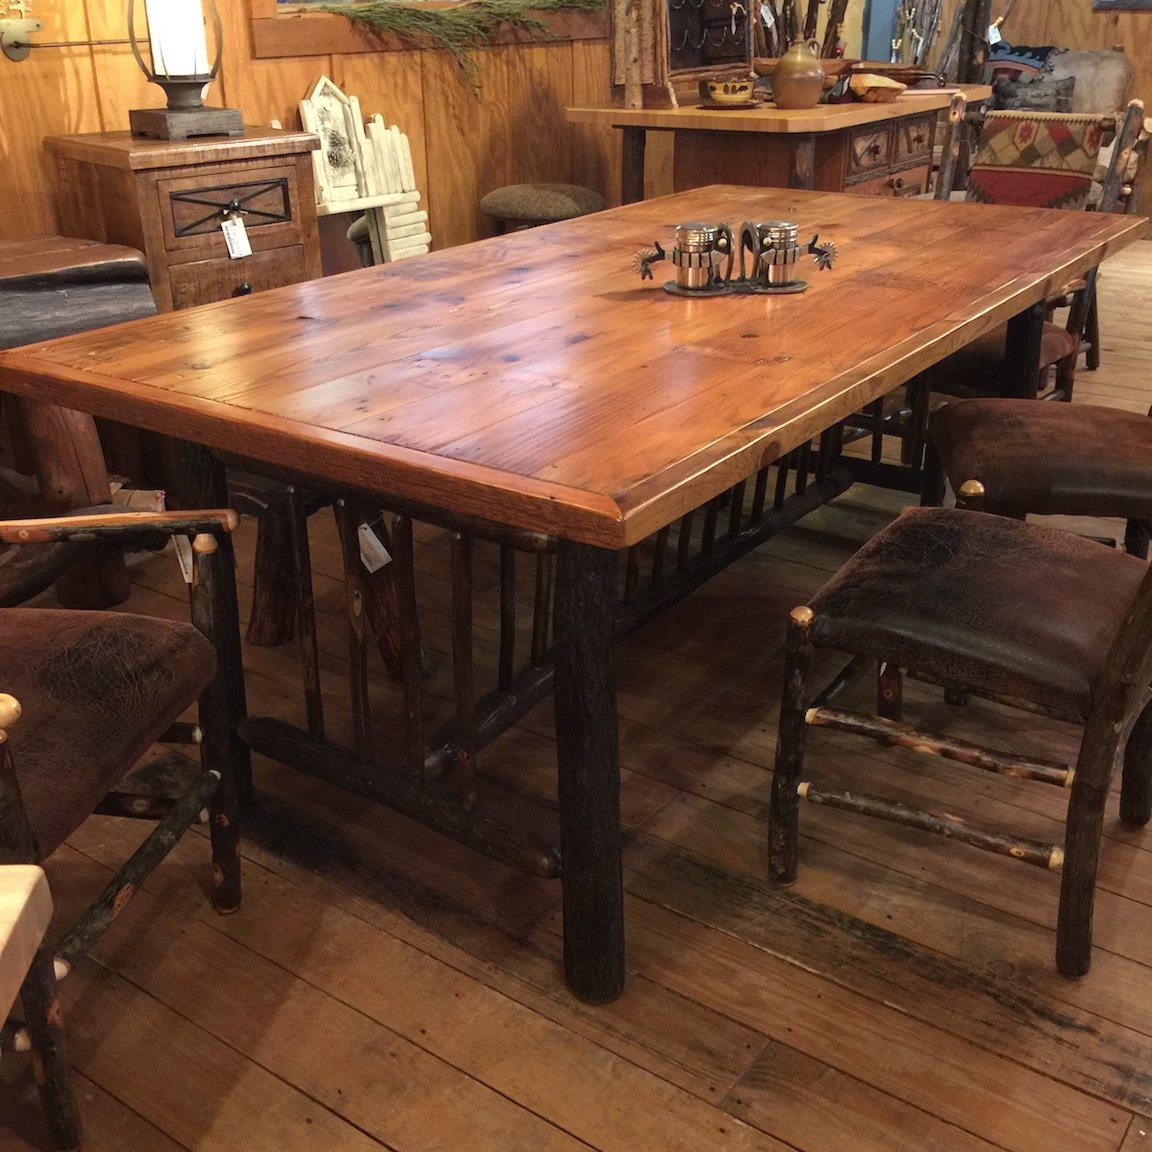 Old Yellowstone Original Spindle 7' Dining Table 31 x 84 x 42